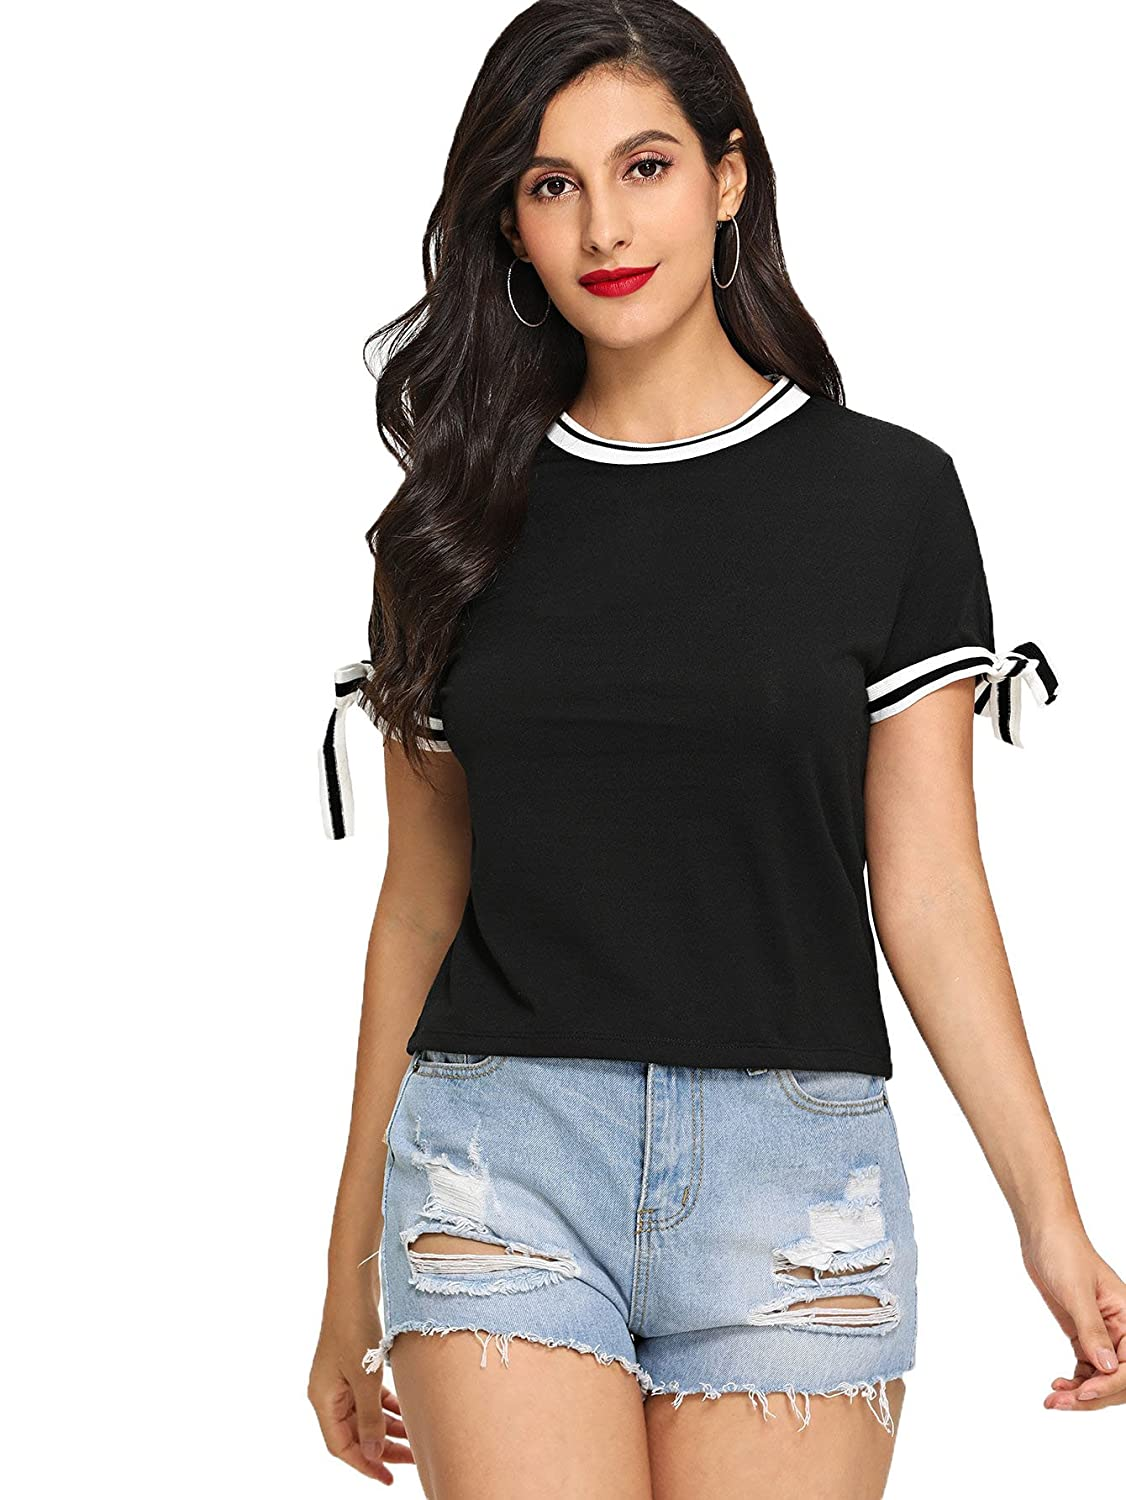 892b503057 Online Cheap wholesale SheIn Womens Round Neck Bow Tie Short Sleeve Cute  Tee Slim Fit T-shirt Knits & Tees Suppliers